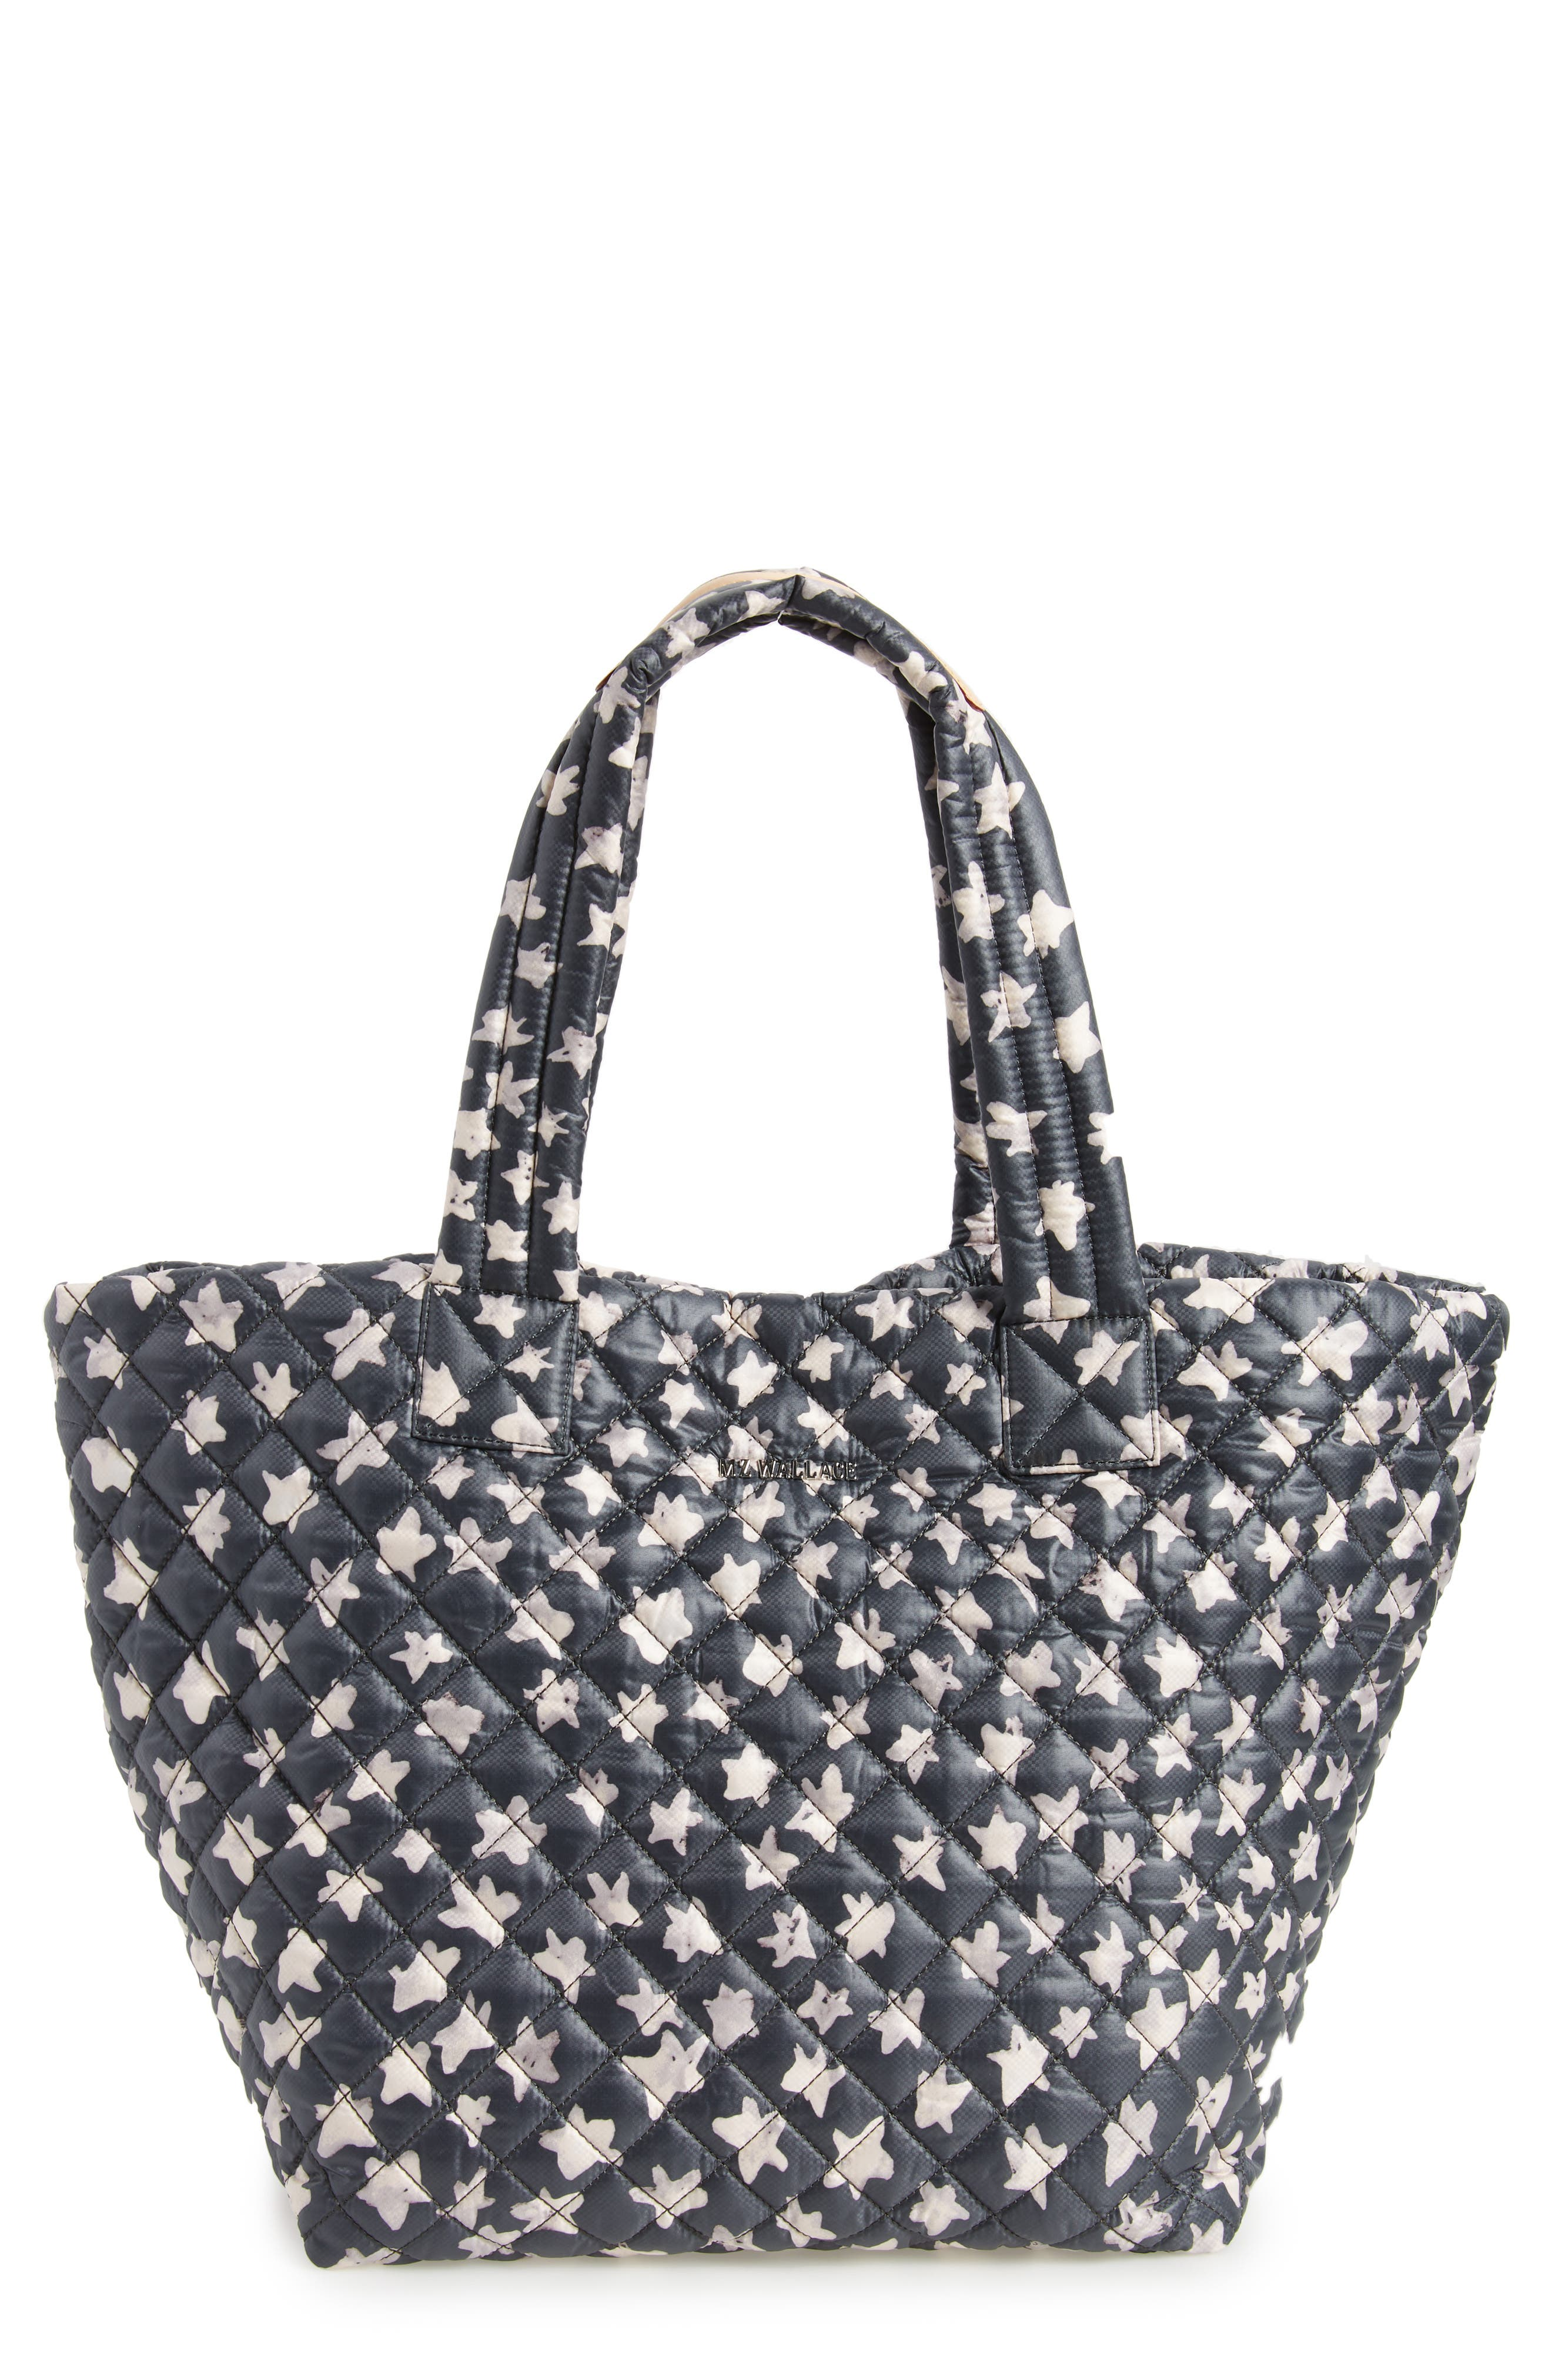 Main Image - MZ Wallace 'Medium Metro' Quilted Oxford Nylon Tote